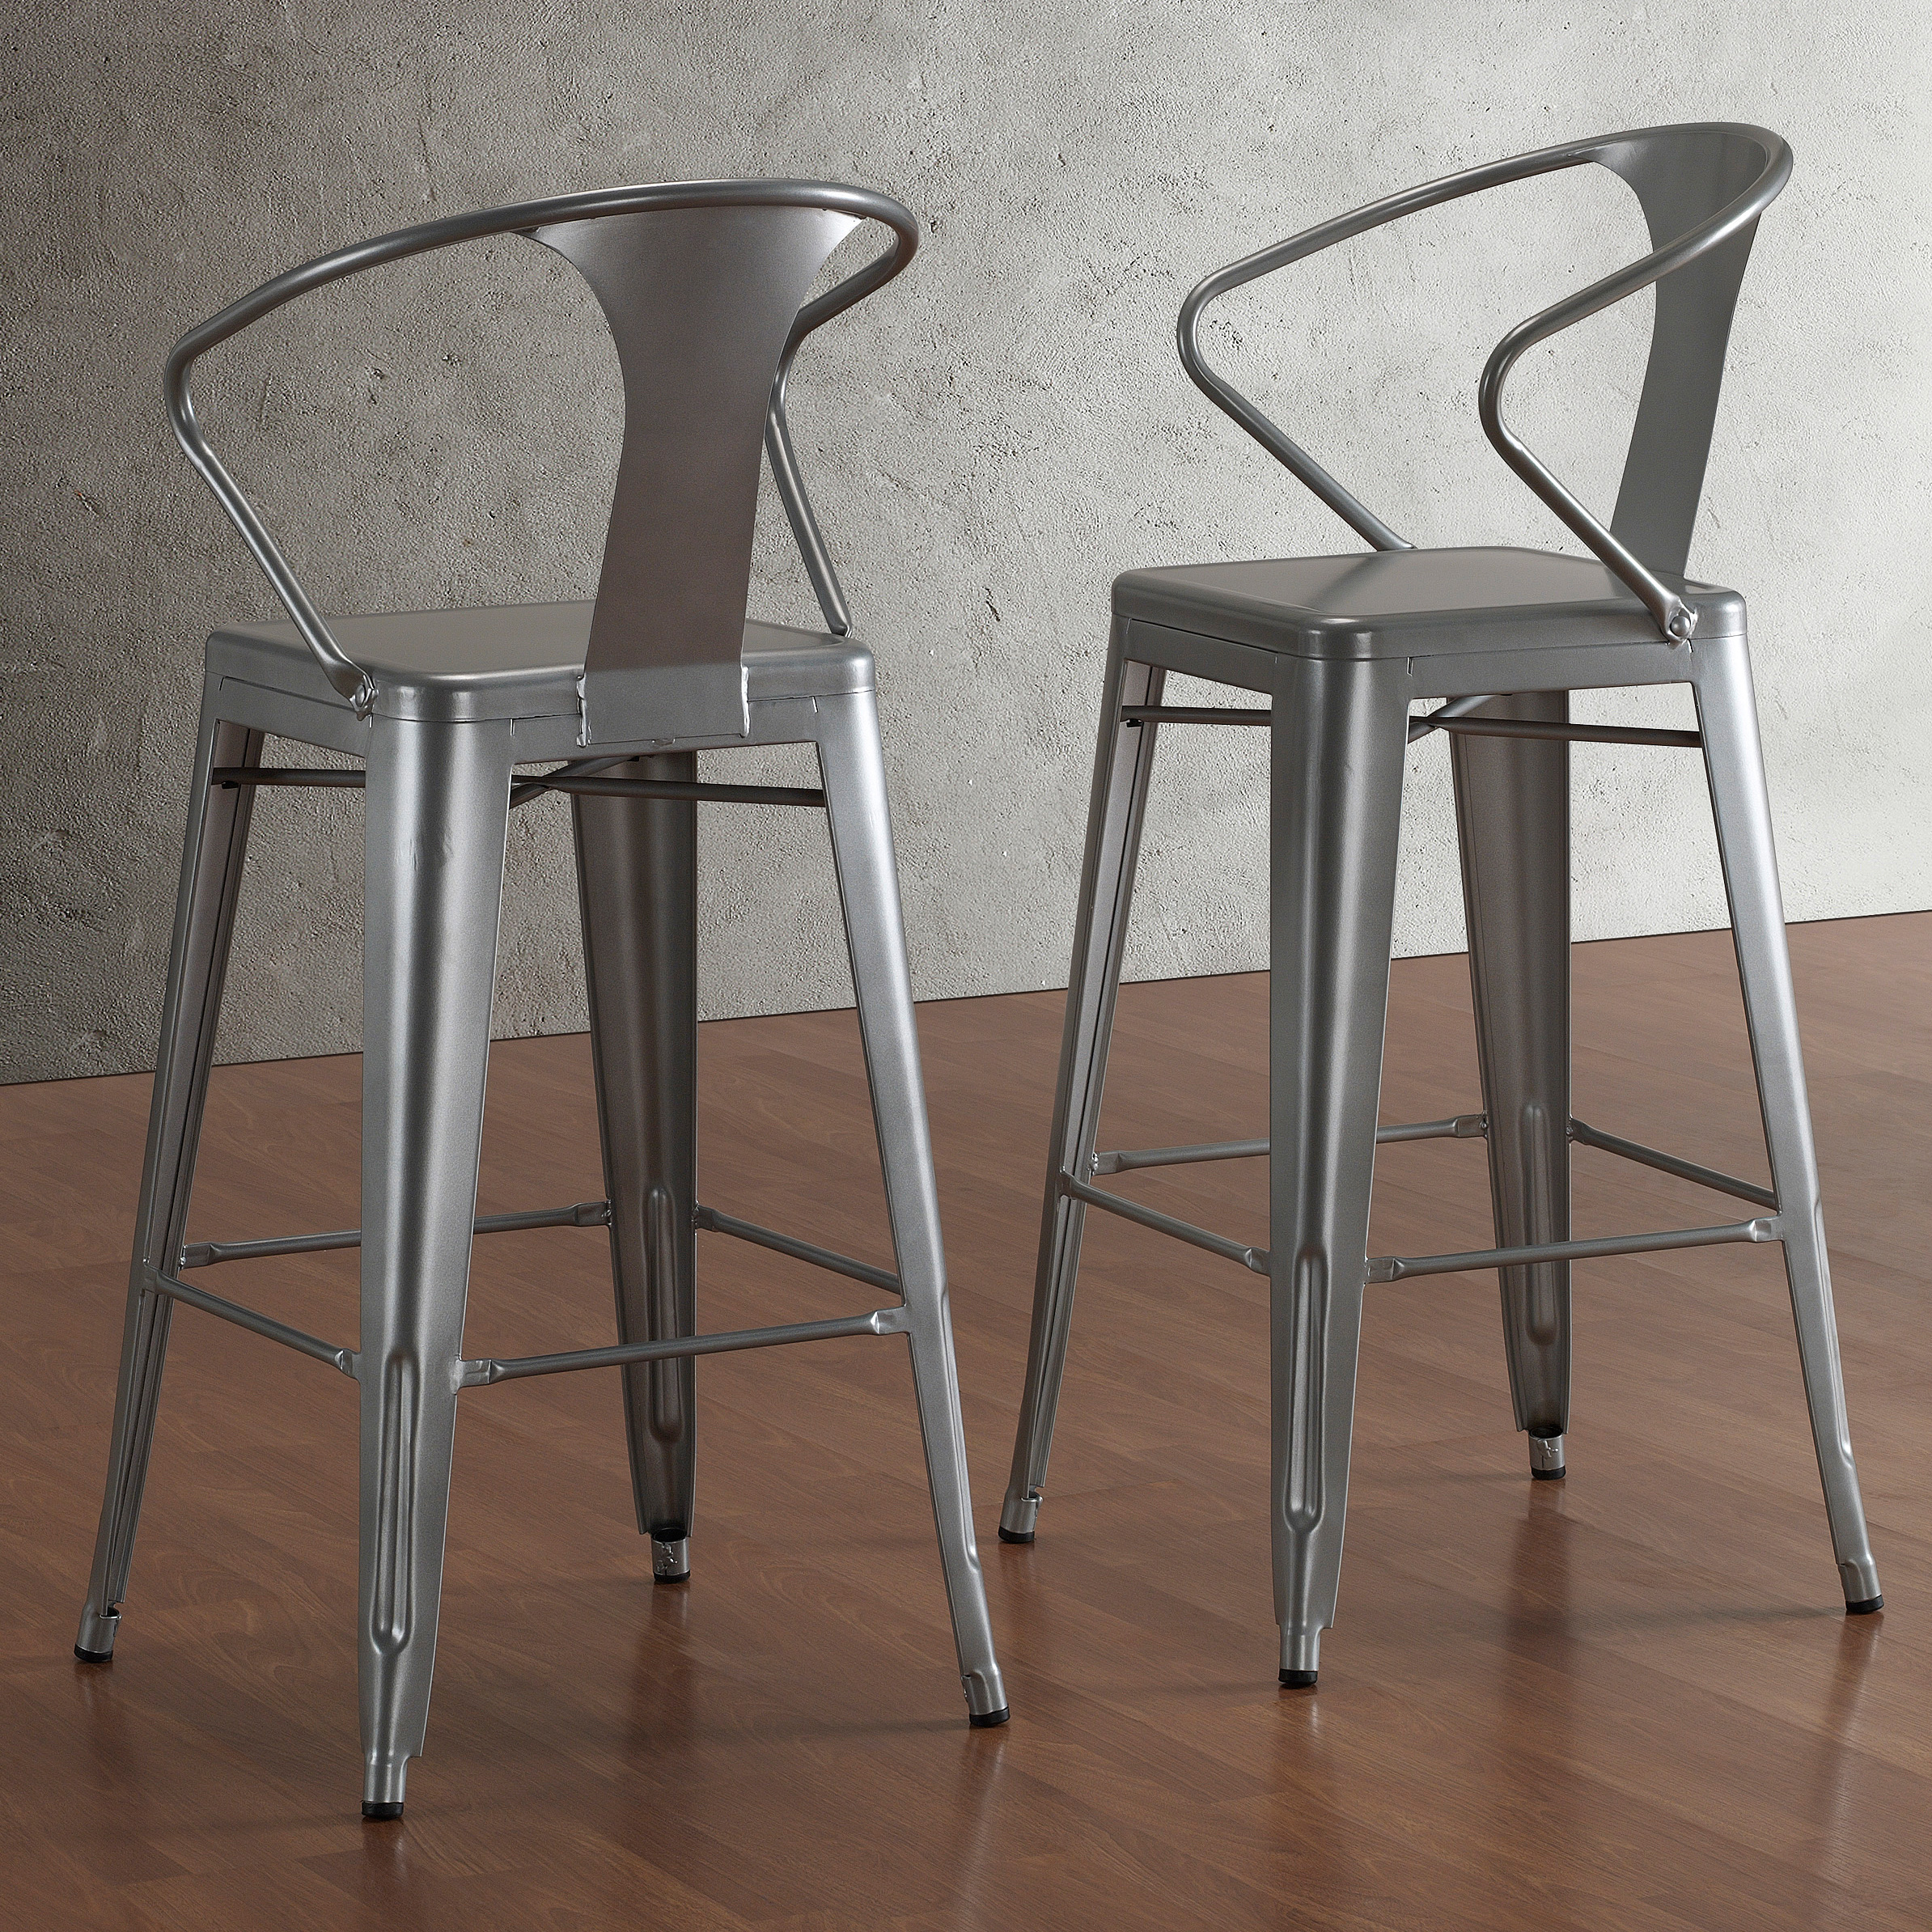 Tabouret Silver With Back (View 1 of 10)